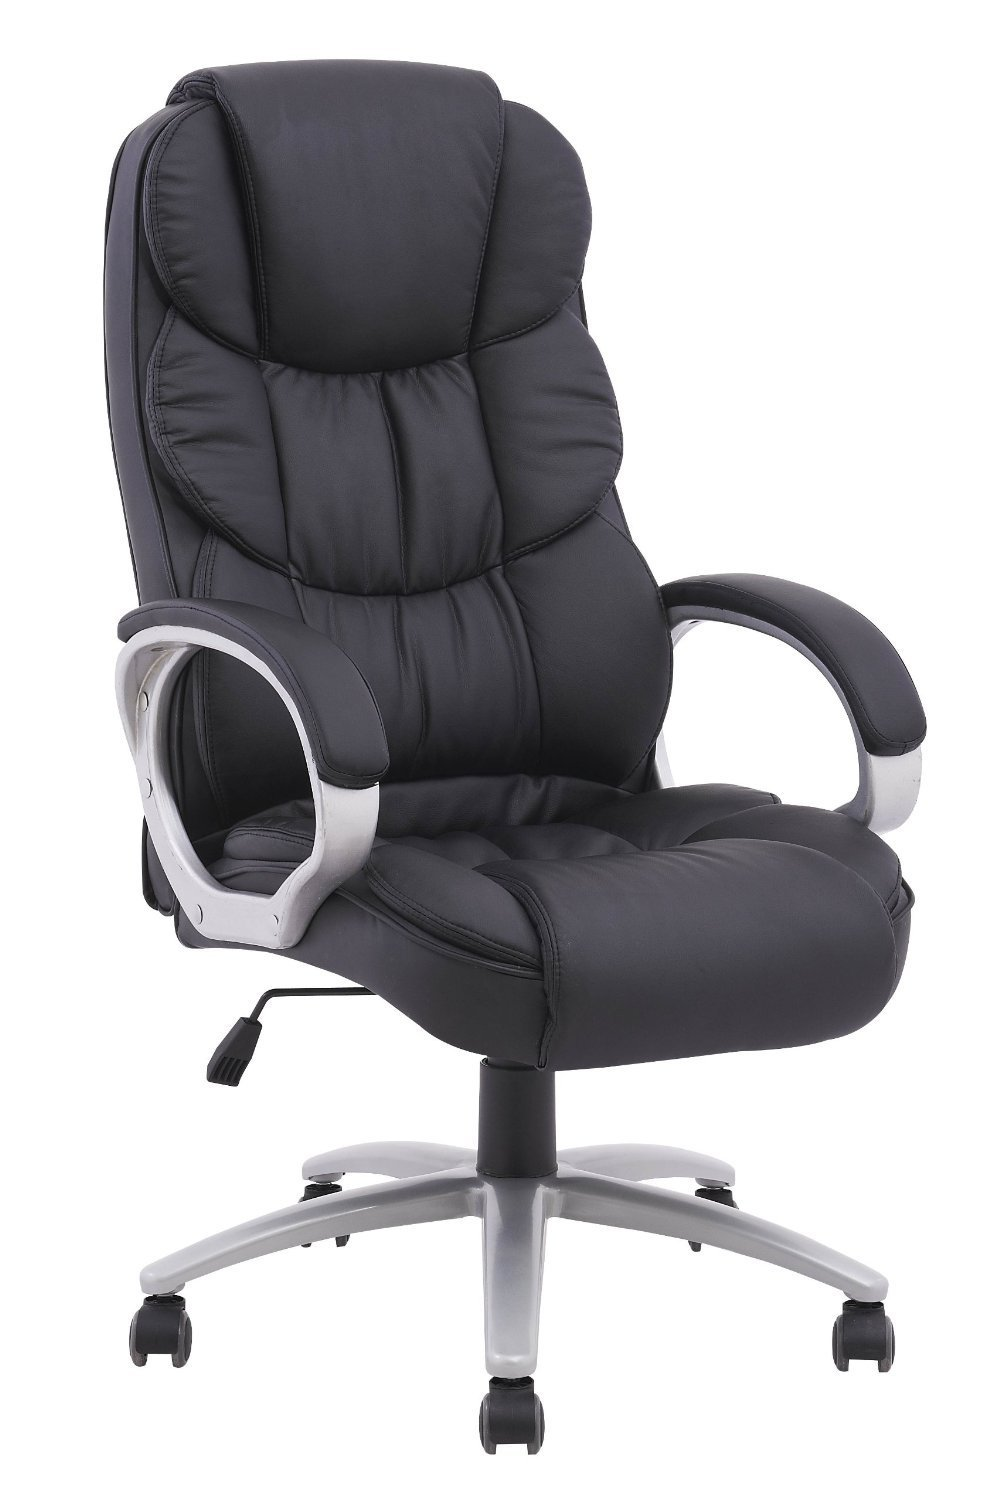 ergonomic chair types cover rentals in columbia sc top 10 best most popular office chairs 2018 - sambatop10